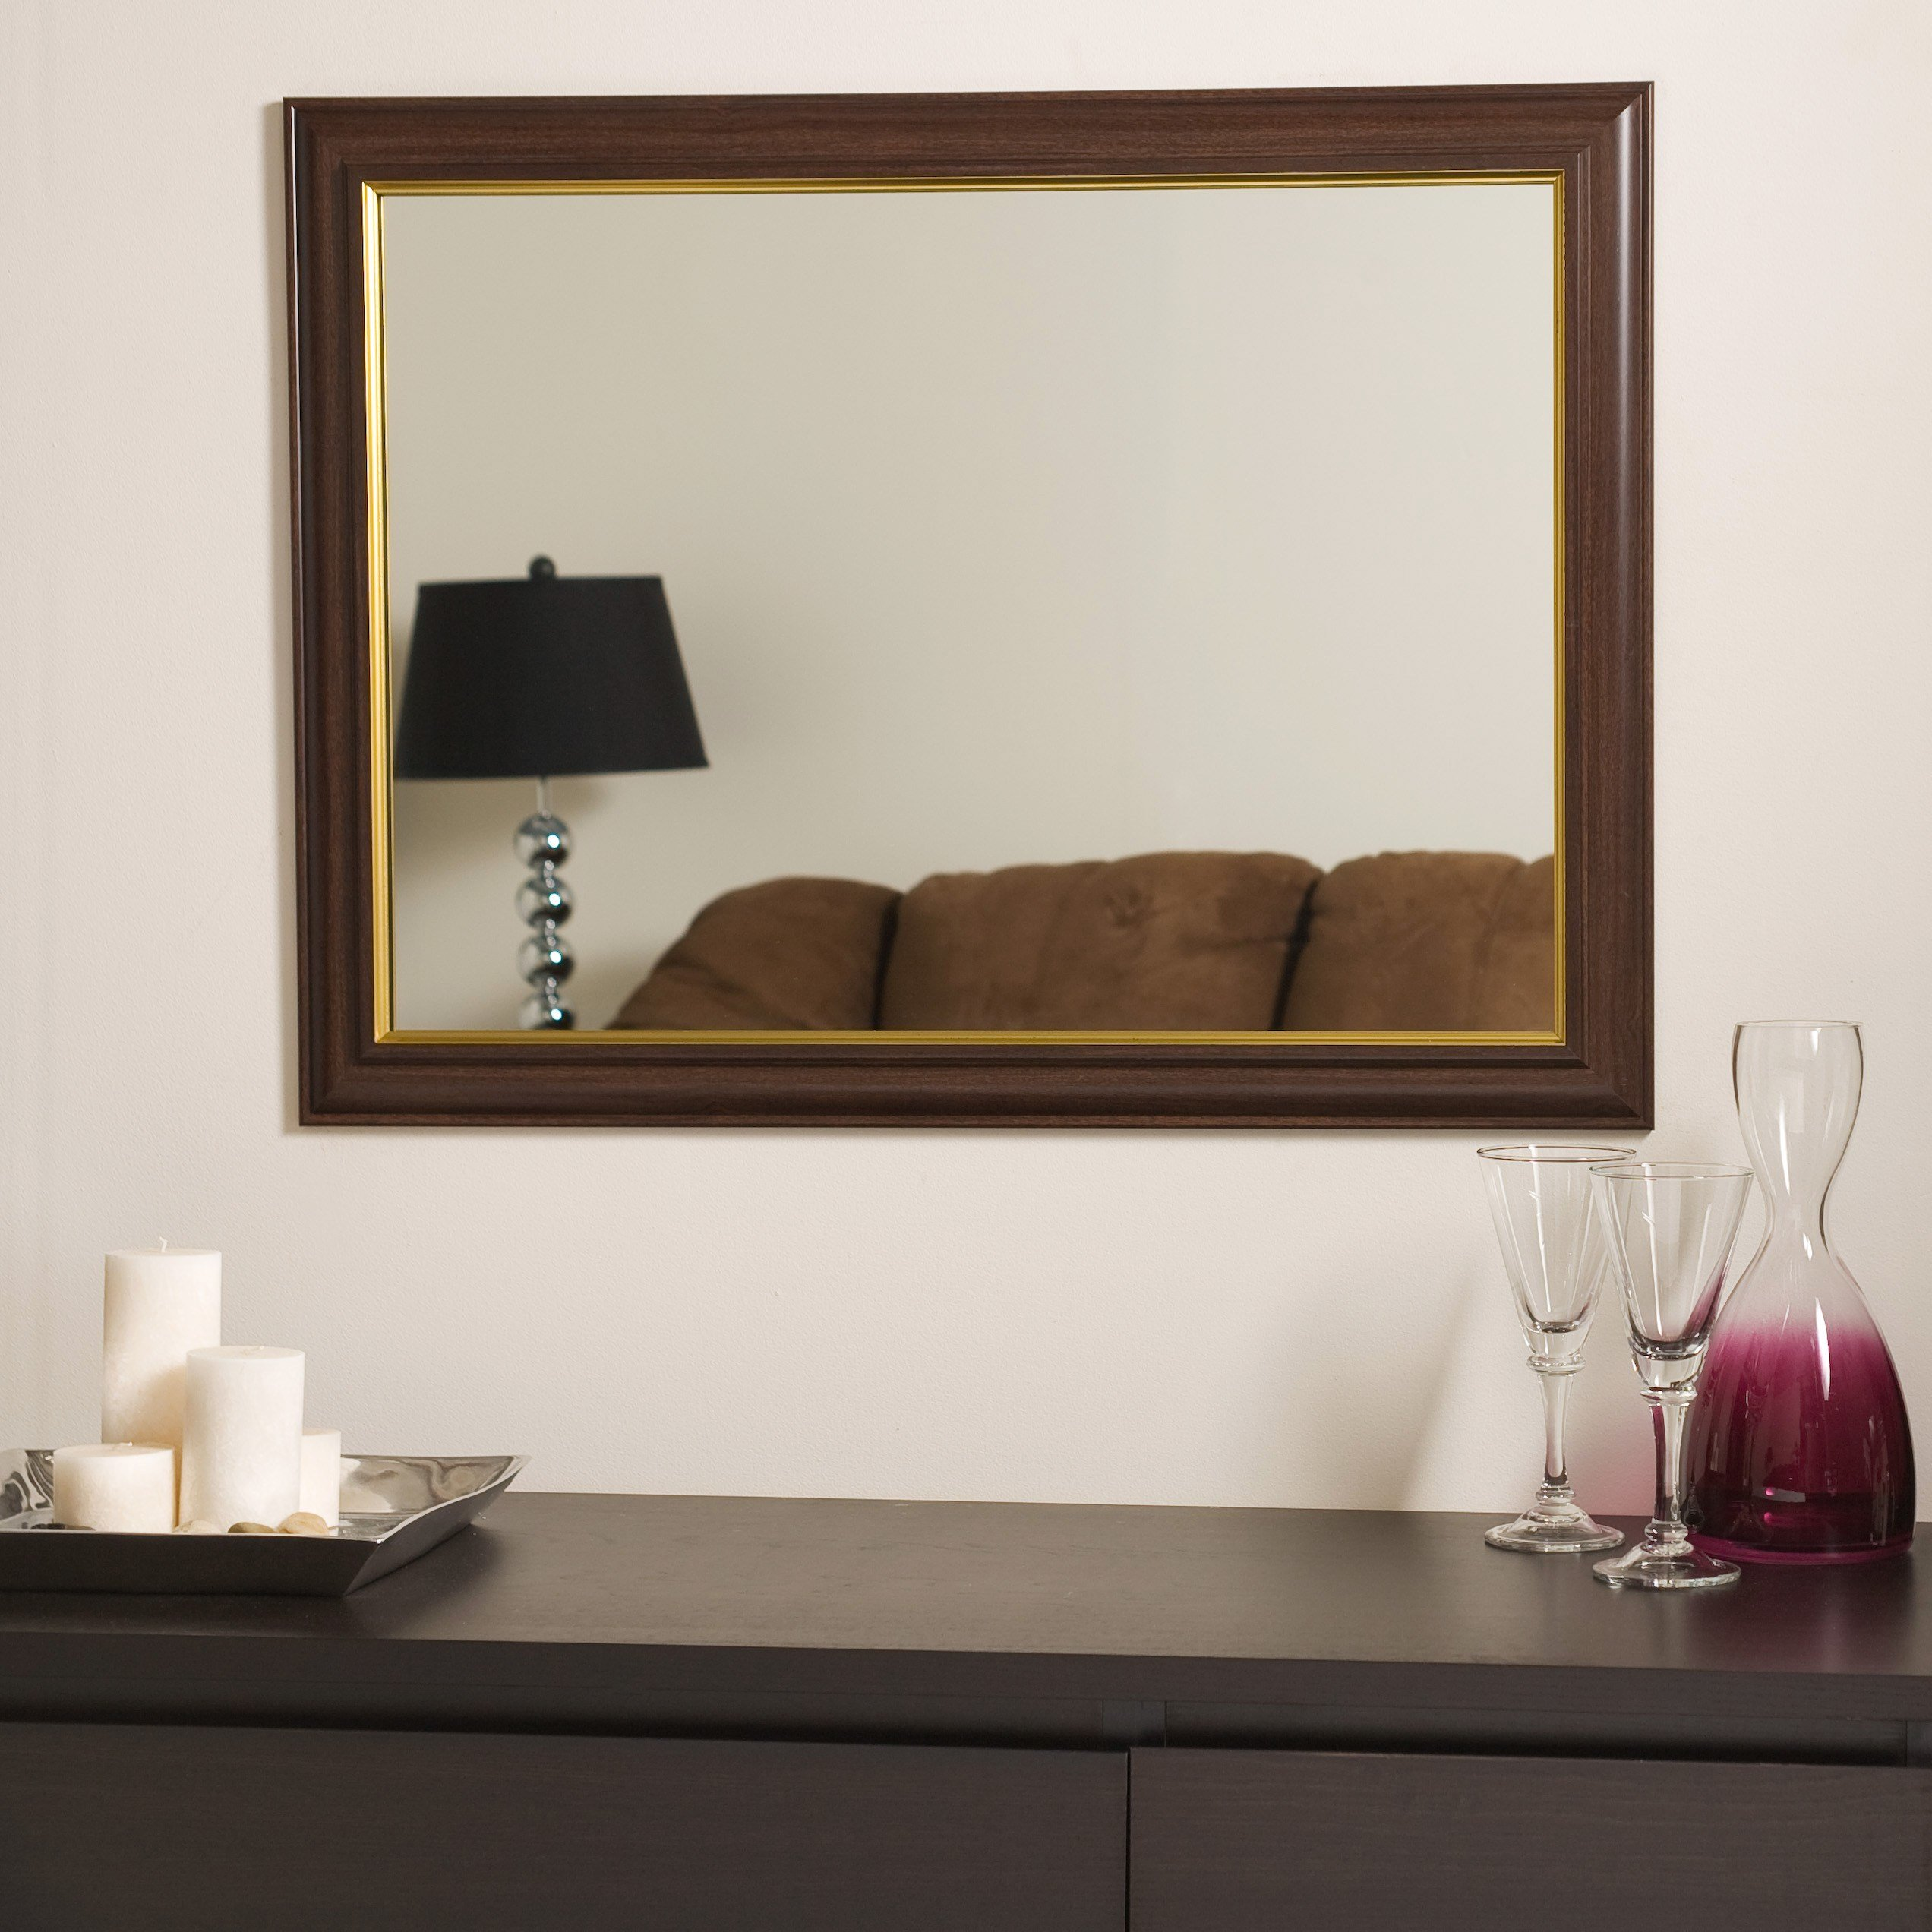 Best 22 Mirror Decor For Walls Decorative Wall Mirrors For Any Space The Latest Home Mcnettimages Com With Pictures